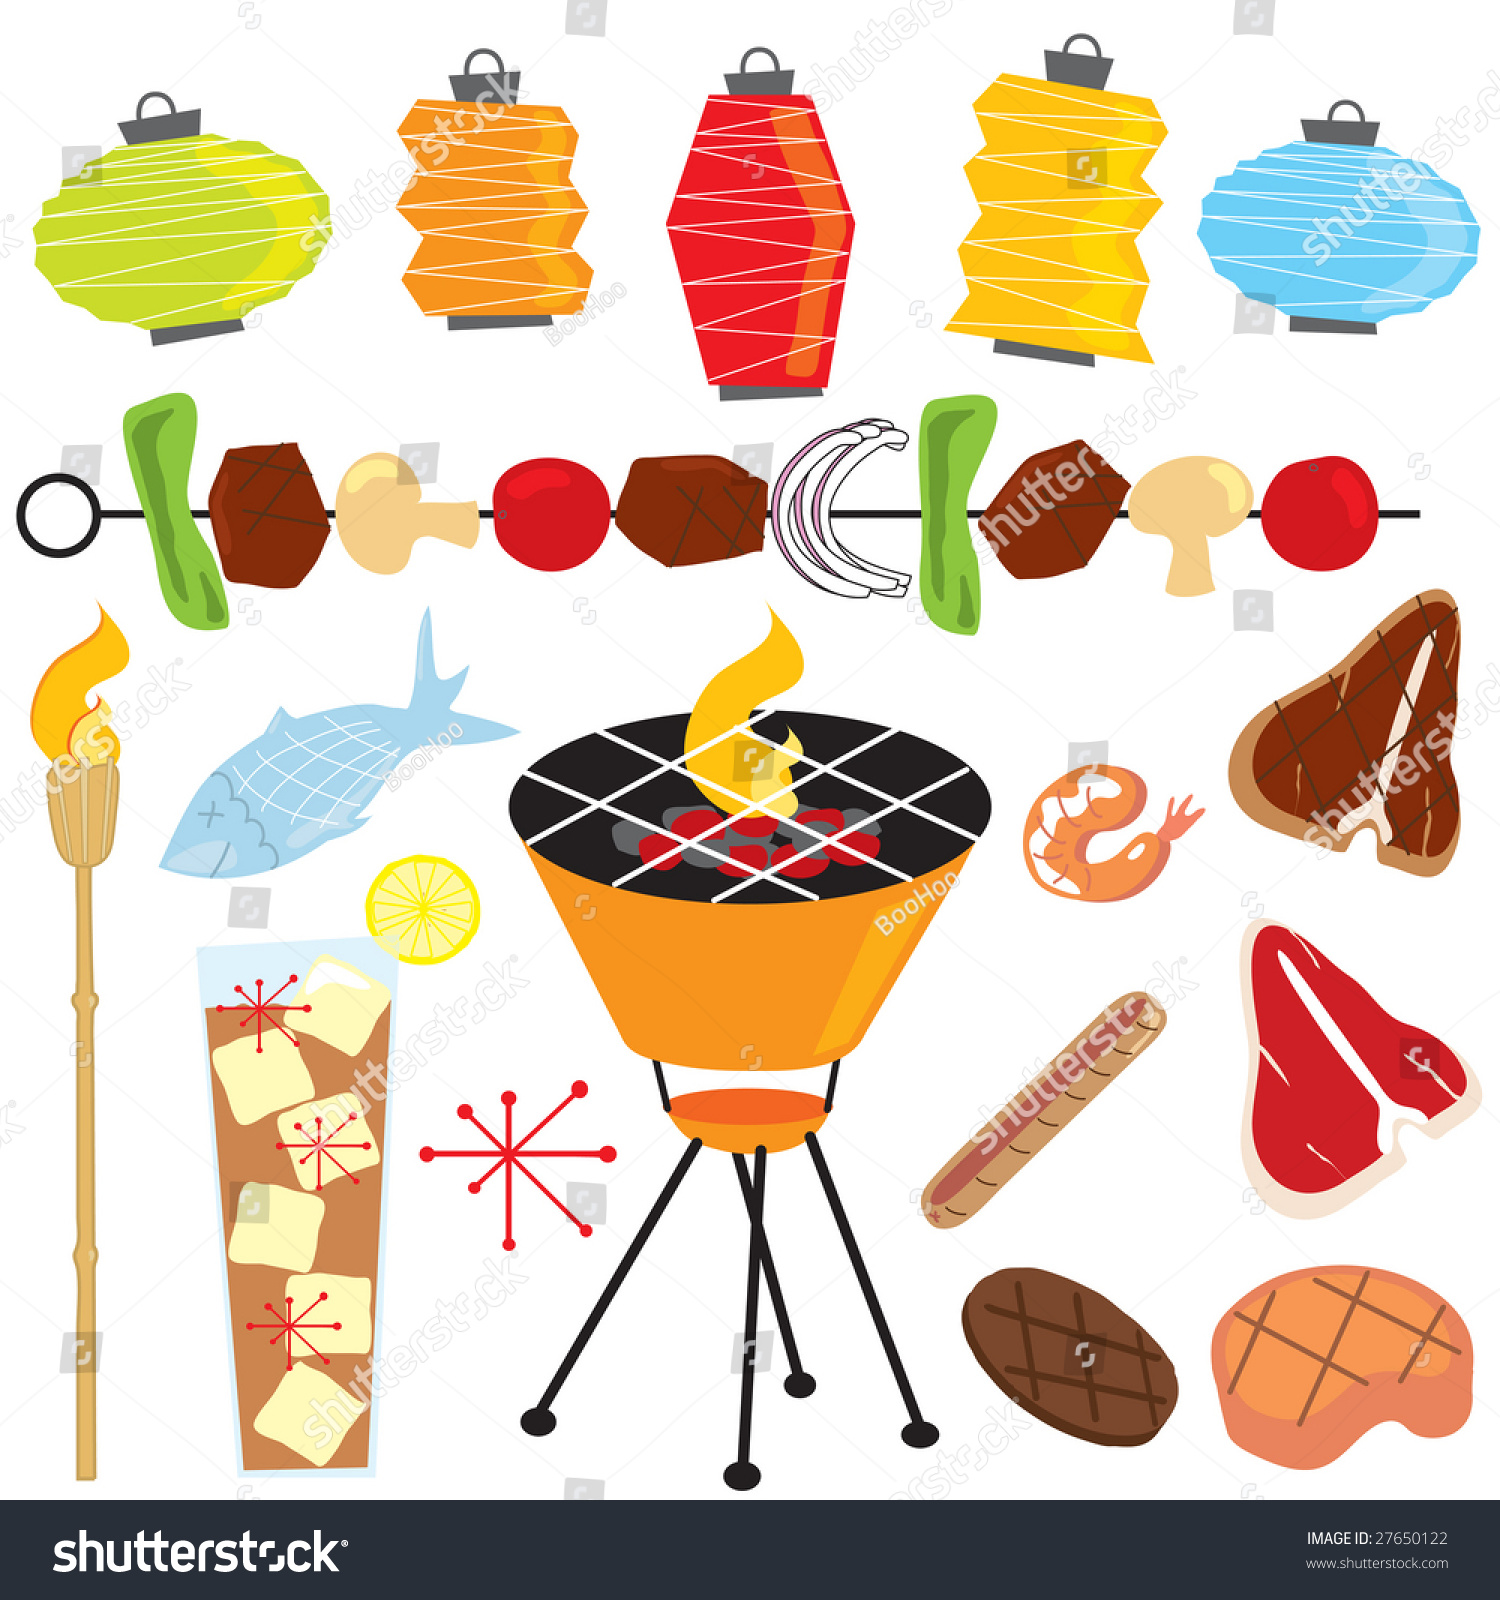 Outdoor Party Lights Clipart: Retro Barbeque Party Tiki Torch Lanterns Stock